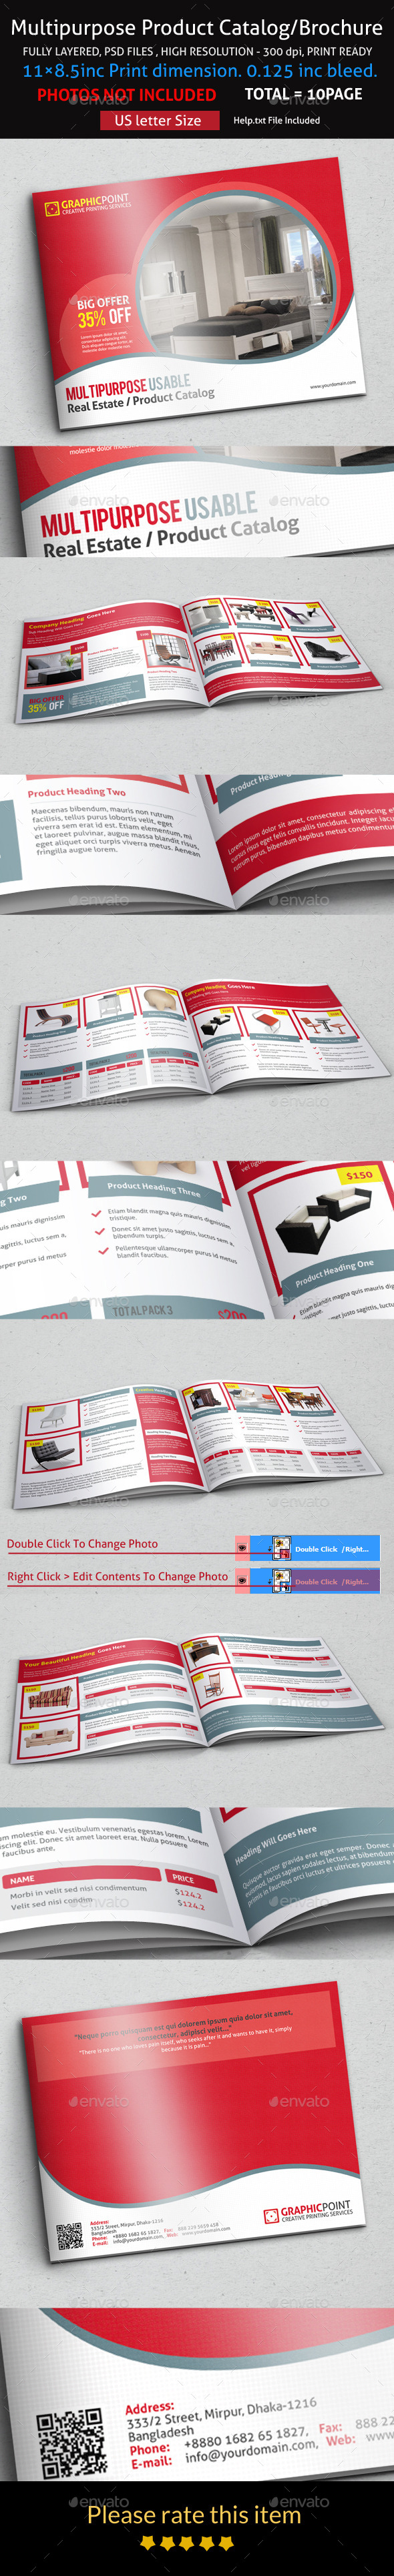 GraphicRiver Multipurpose Product Catalog Brochure 9226487